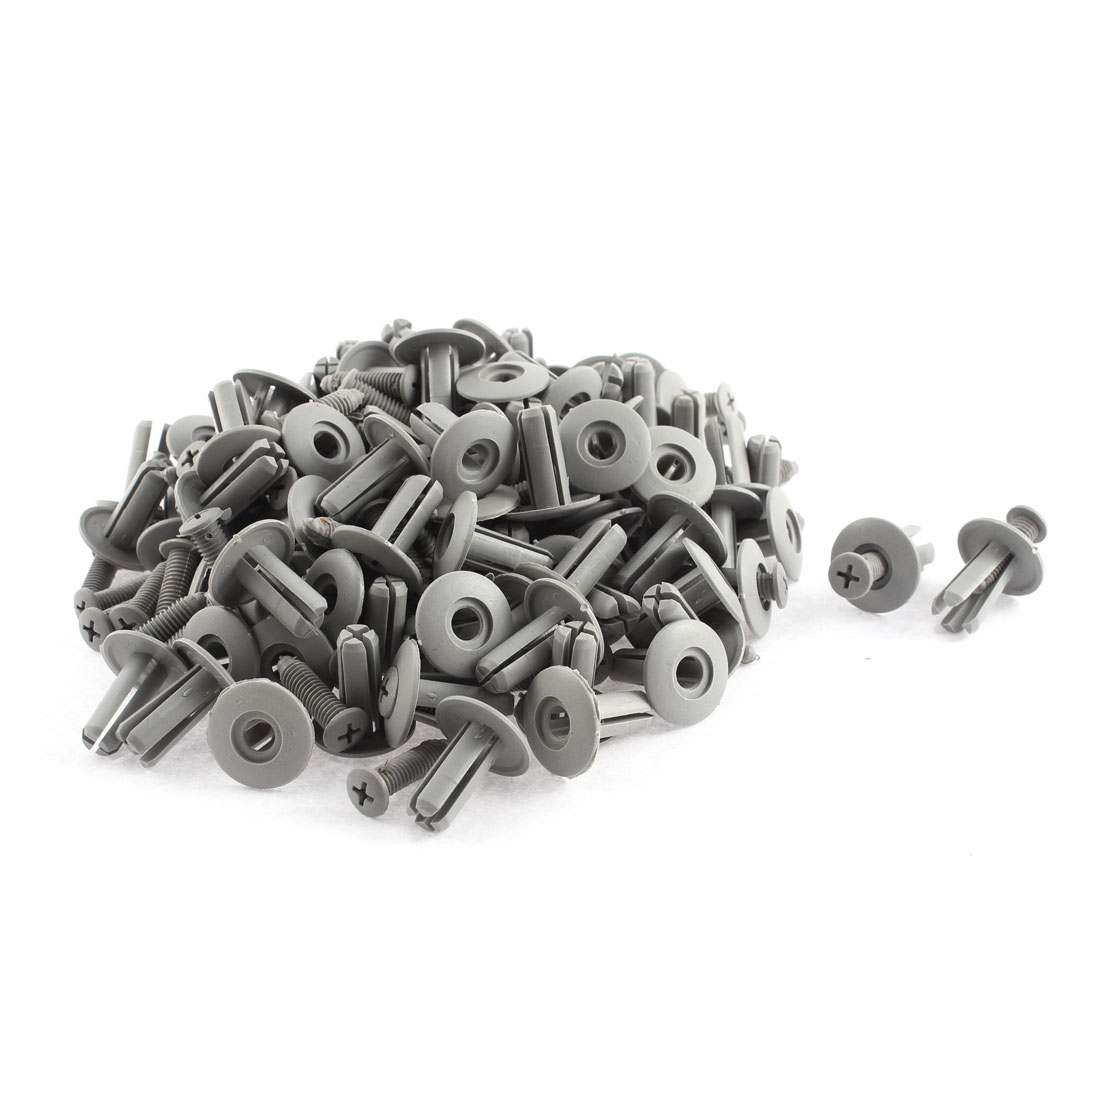 100 Pcs 20mm x 8mm Gray Plastic Push-Type Fastener Retainer Rivet